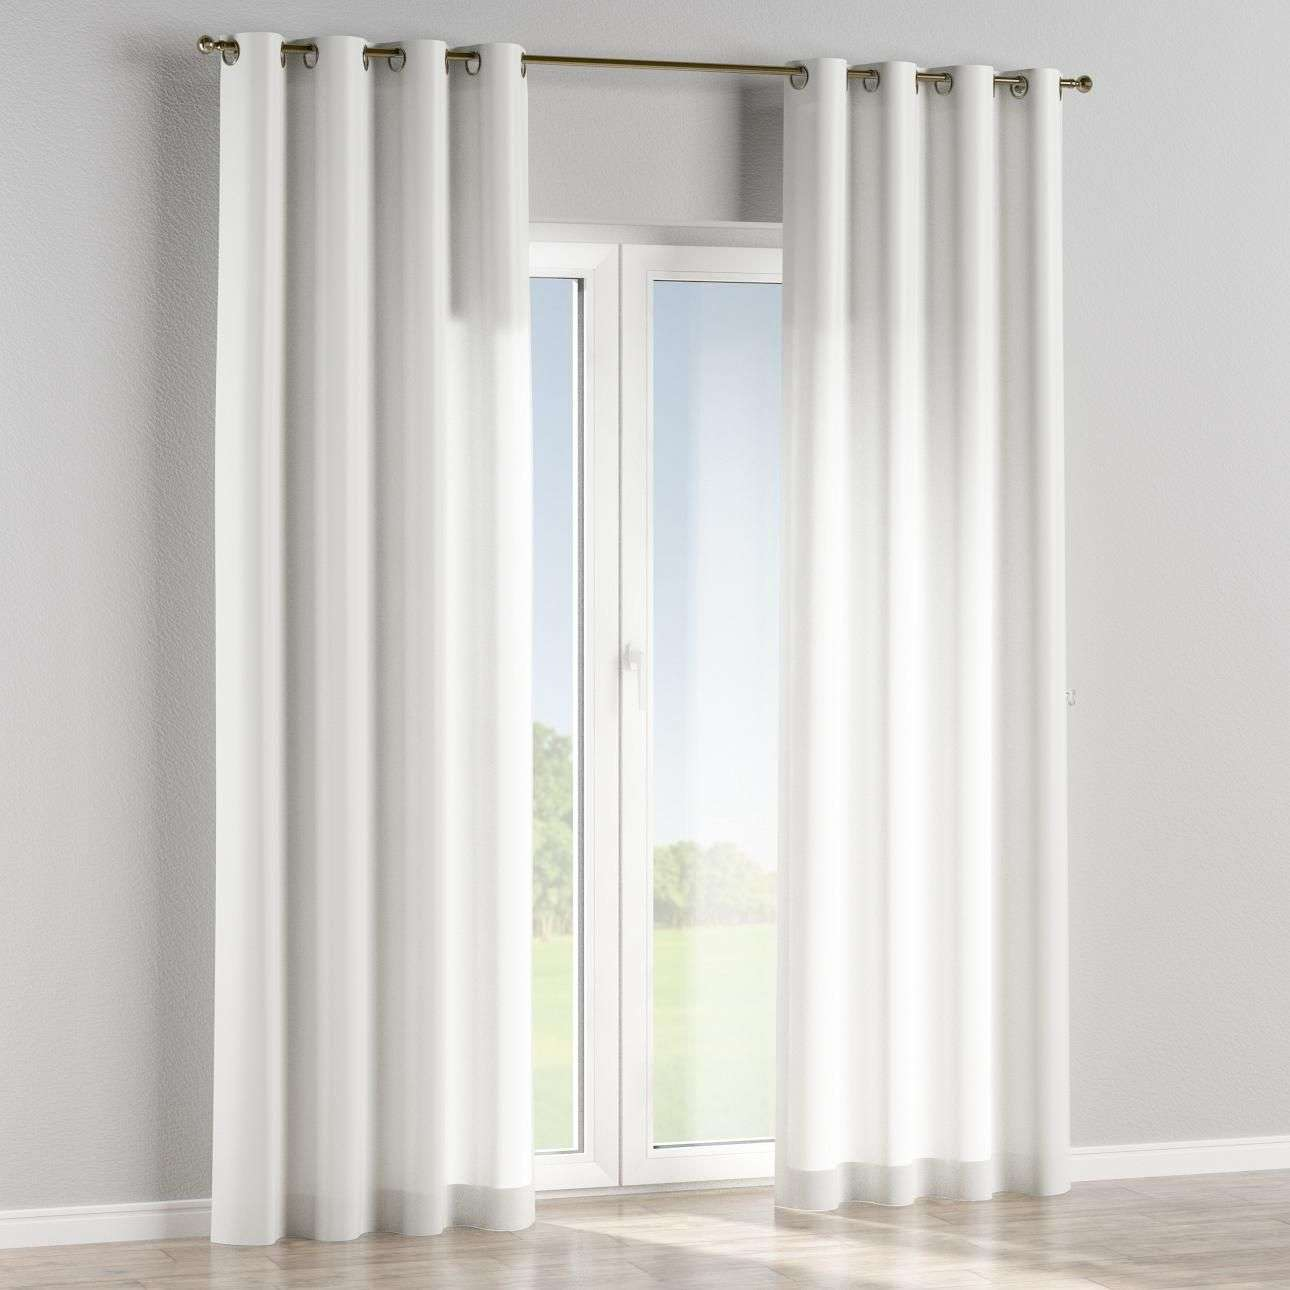 Eyelet lined curtains in collection Arcana, fabric: 104-01